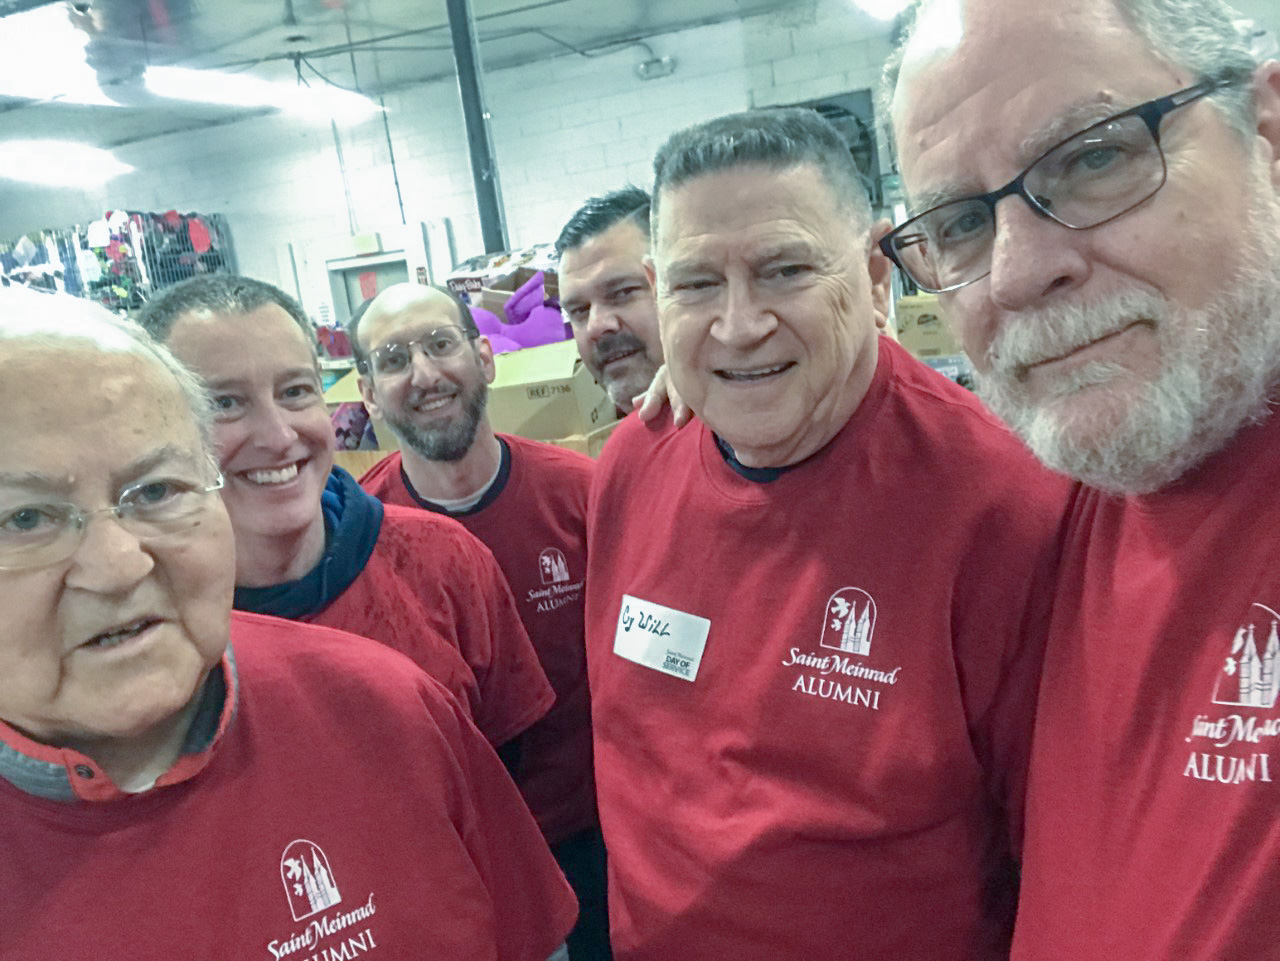 St. Meinrad Day of Service Deacon Rocky Mattingly, right, grabbed this selfie with others who worked at the St. Vincent de Paul Thrift Store in Evansville as part of St. Meinrad's March 14 Day of Service. With him are Father Joseph Ziliak, retired priest of the Diocese of Evansville, left, Bob Bindley, Matt Mounsour, Evansville Day of Service organizer Darrin Sroufe and retired Deacon Cy Will.